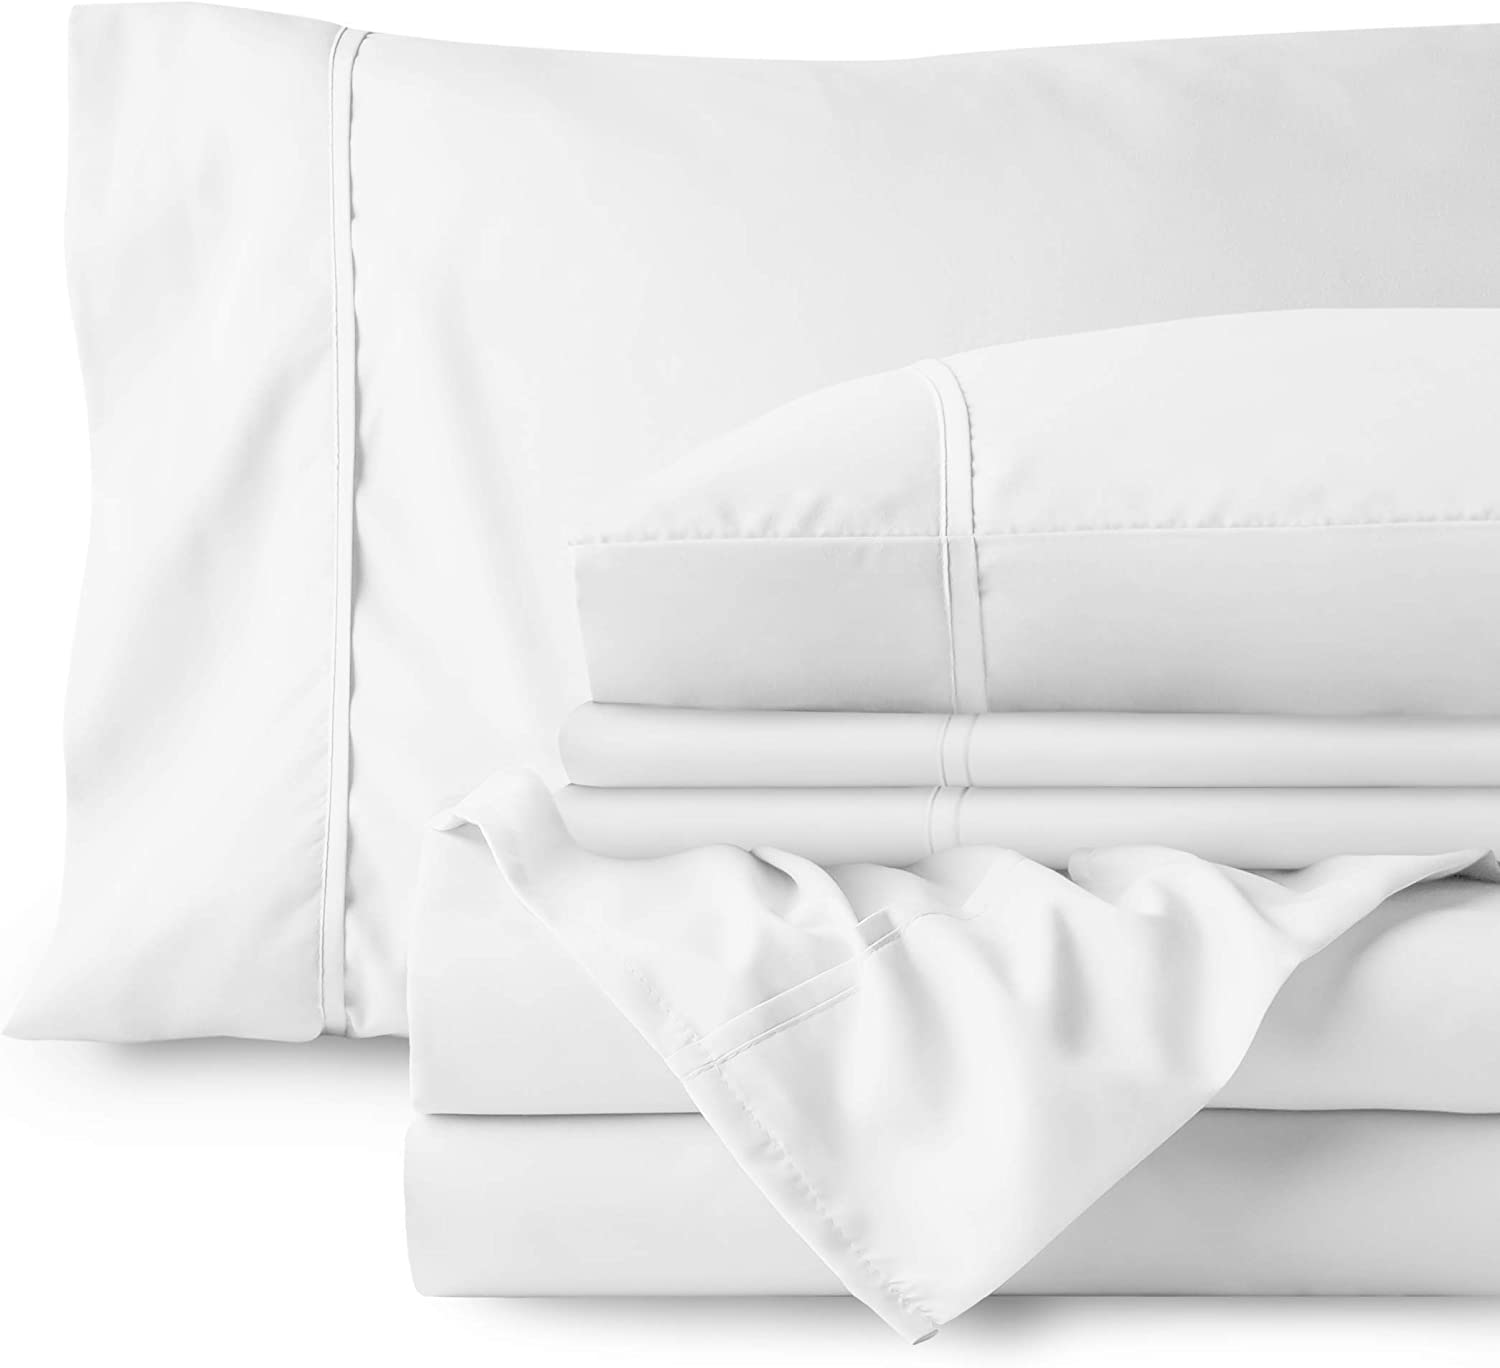 Bare Home Bedding Bundle - 6 Piece Microfiber Sheet Set with 4 Pillowcases (Queen, Cool White)